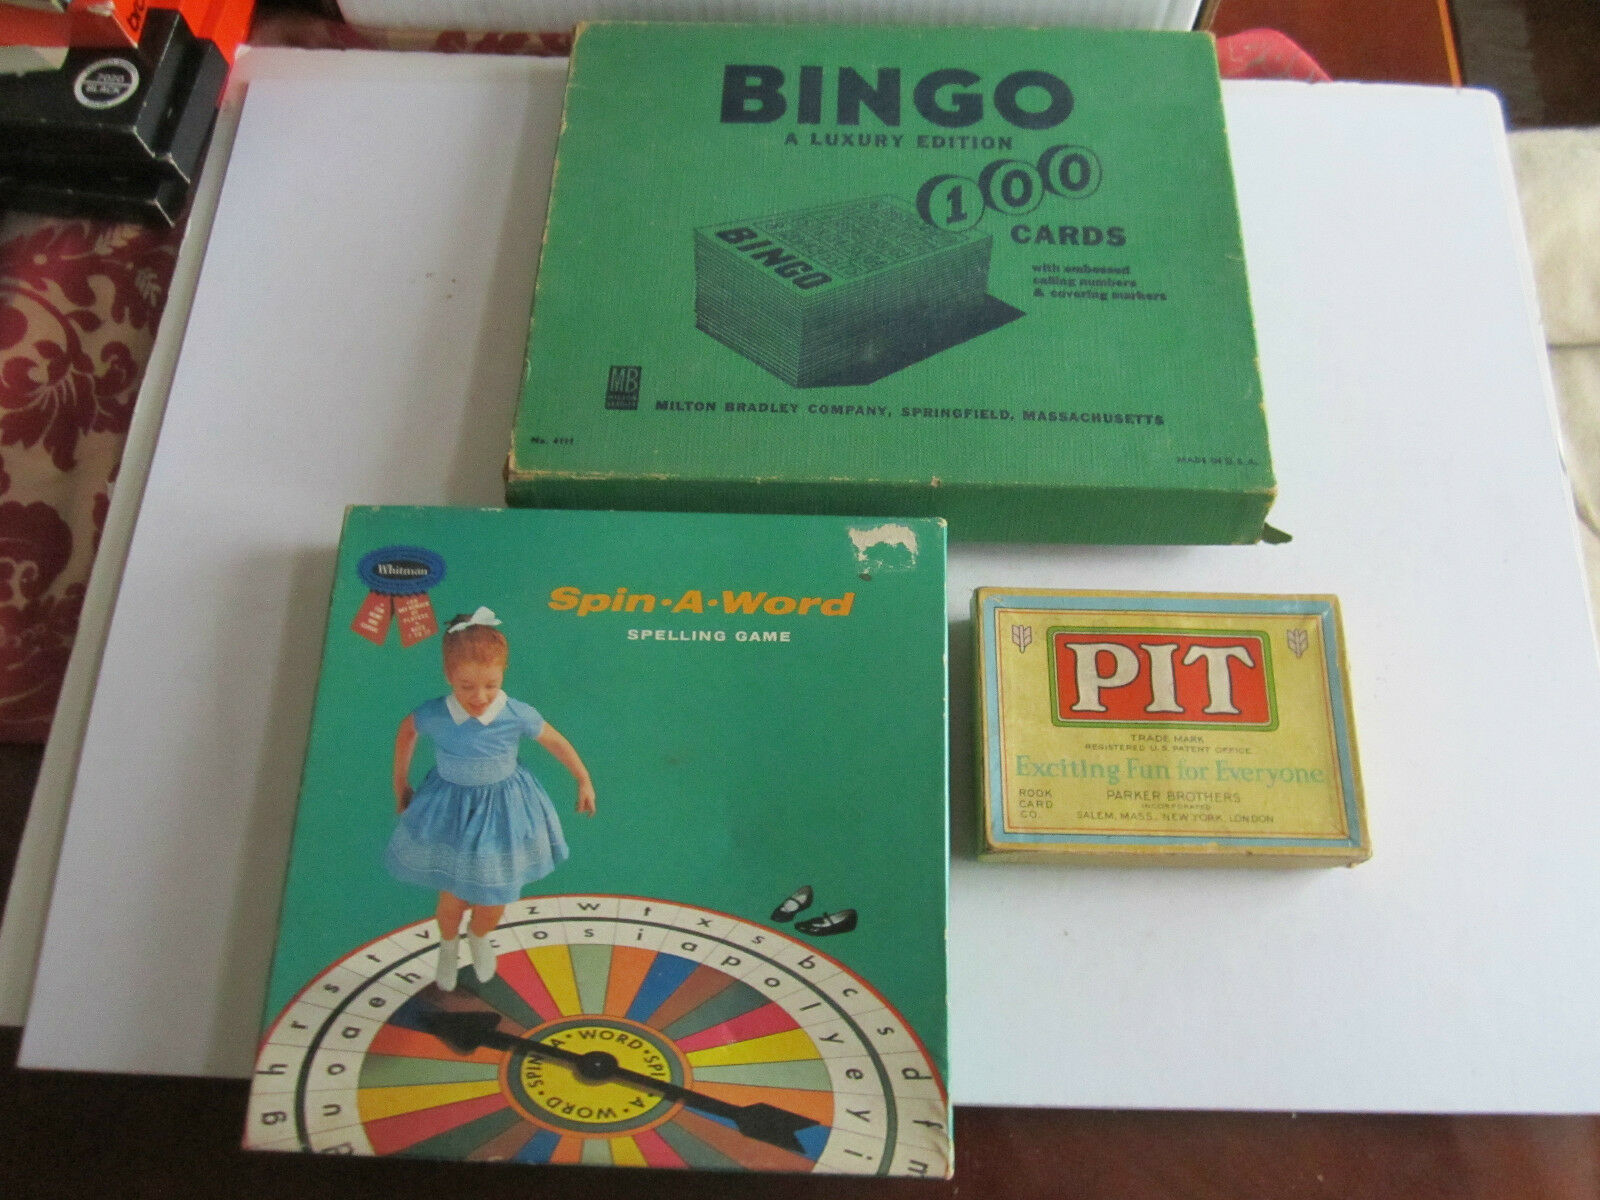 3 VTG TOY GAMES - BINGO - LUXURY EDITION - SPIN A WORD SPELLING GAME & PIT